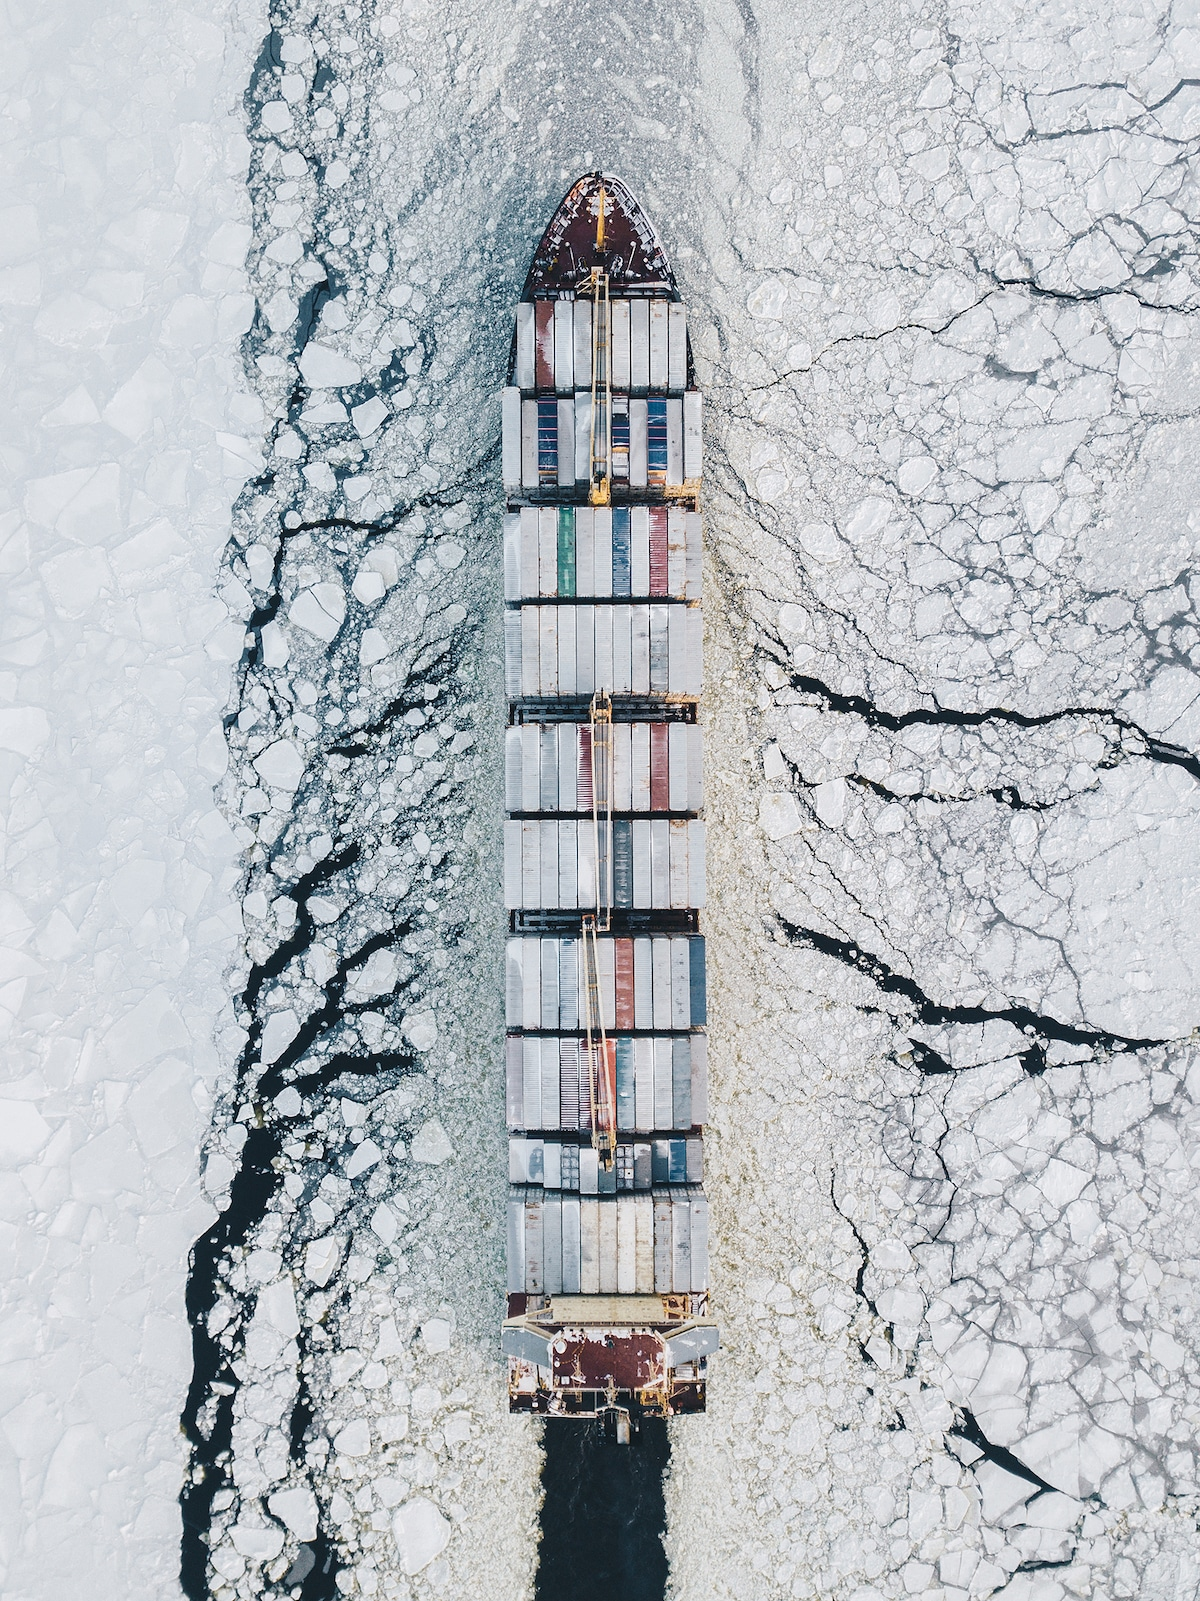 Ship Carrying Freight Through Icy Waters of Finland